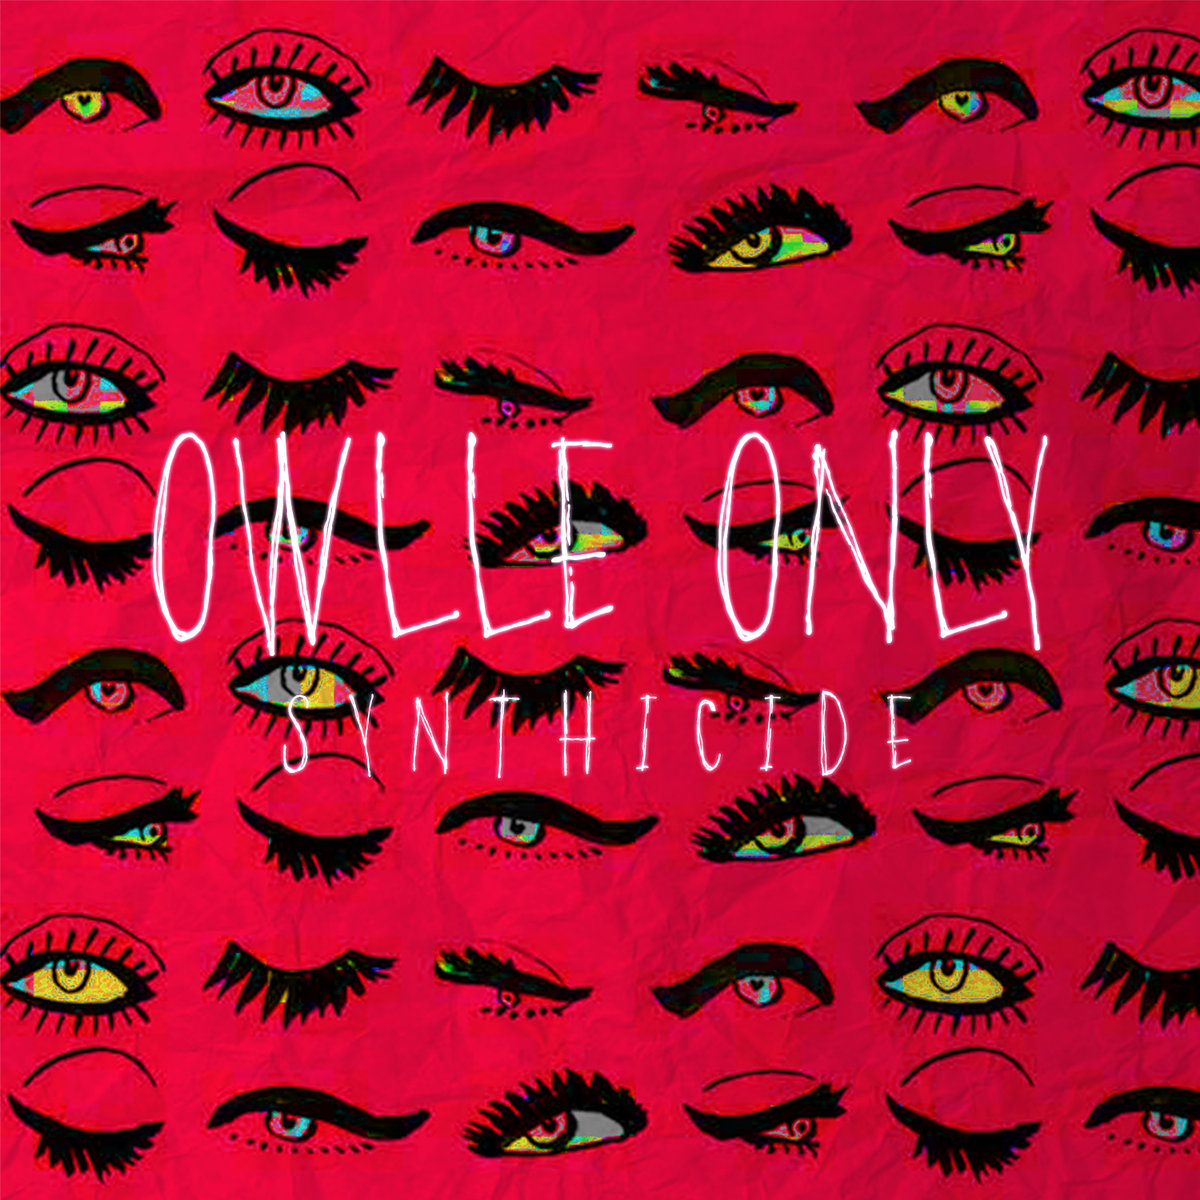 Owlle Only - Synthicide